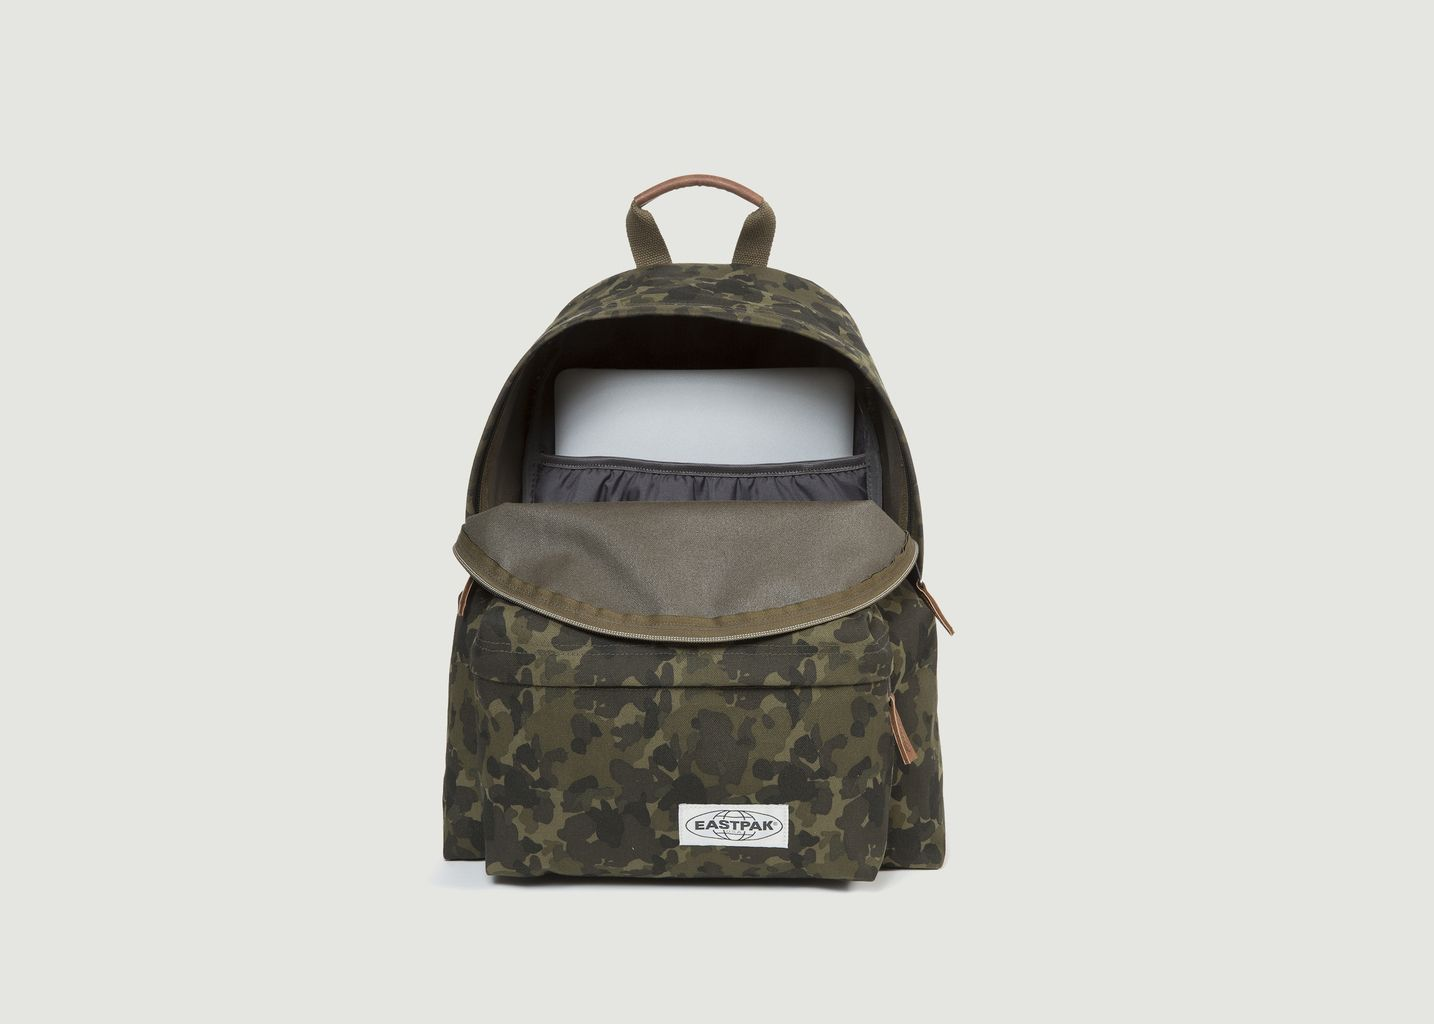 Sac L'exception Padded Pak'r Khaki 1gqytwacs Eastpak RwpqvcZ0In